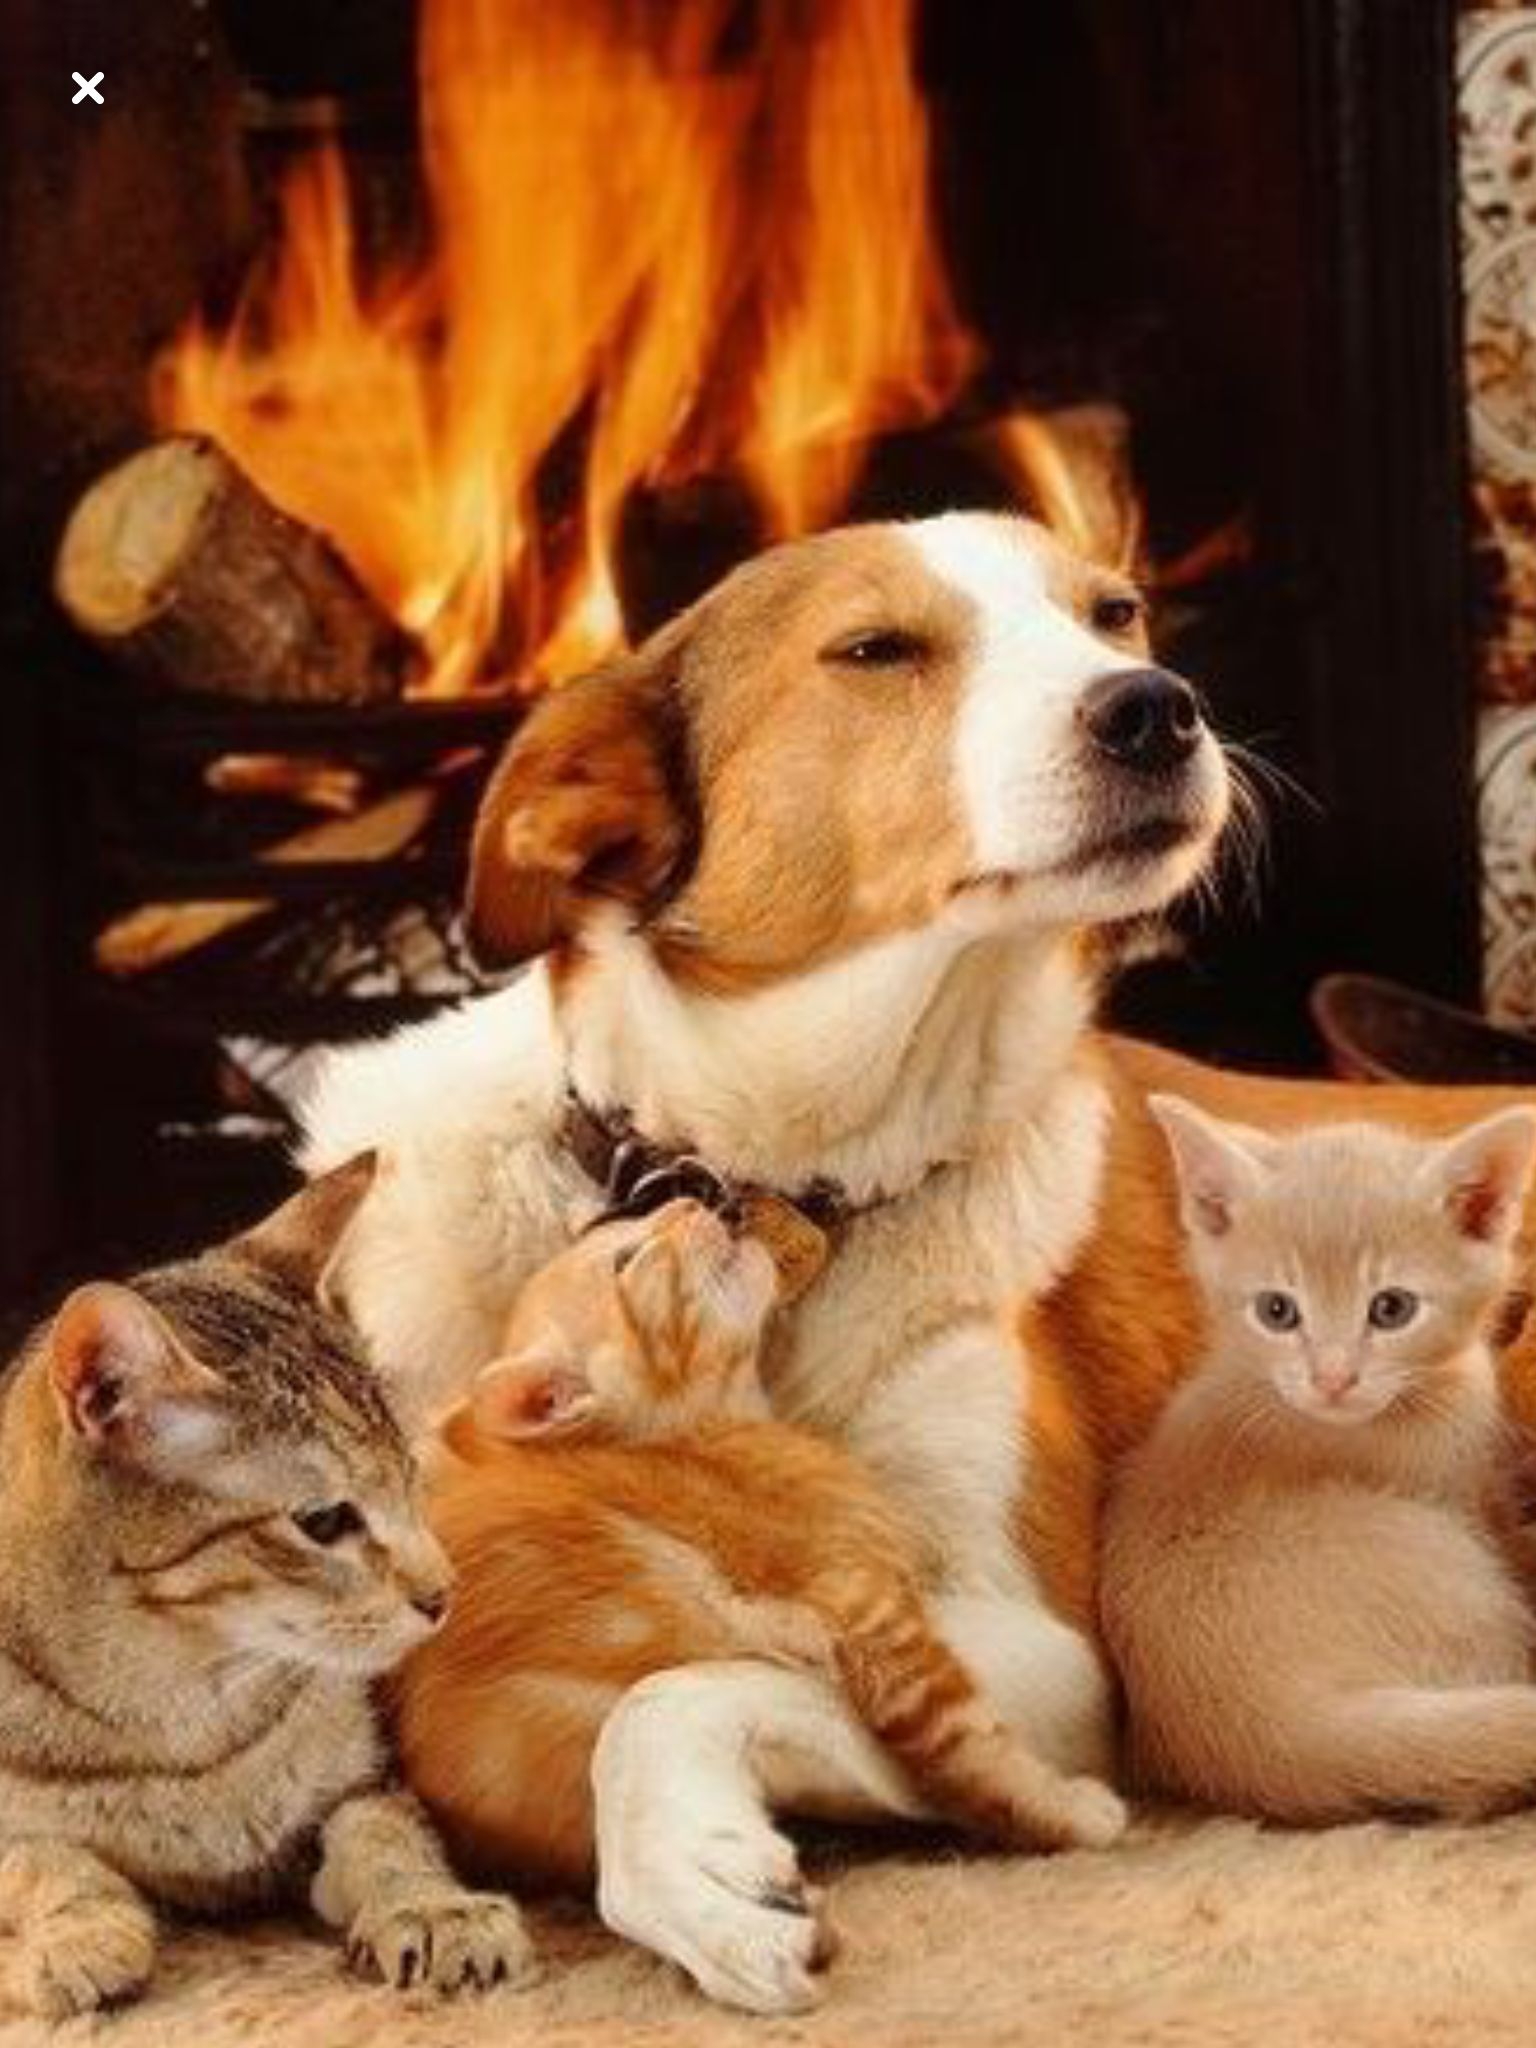 Amma Good Dog Cats And Kittens Cute Animals Animals Friends